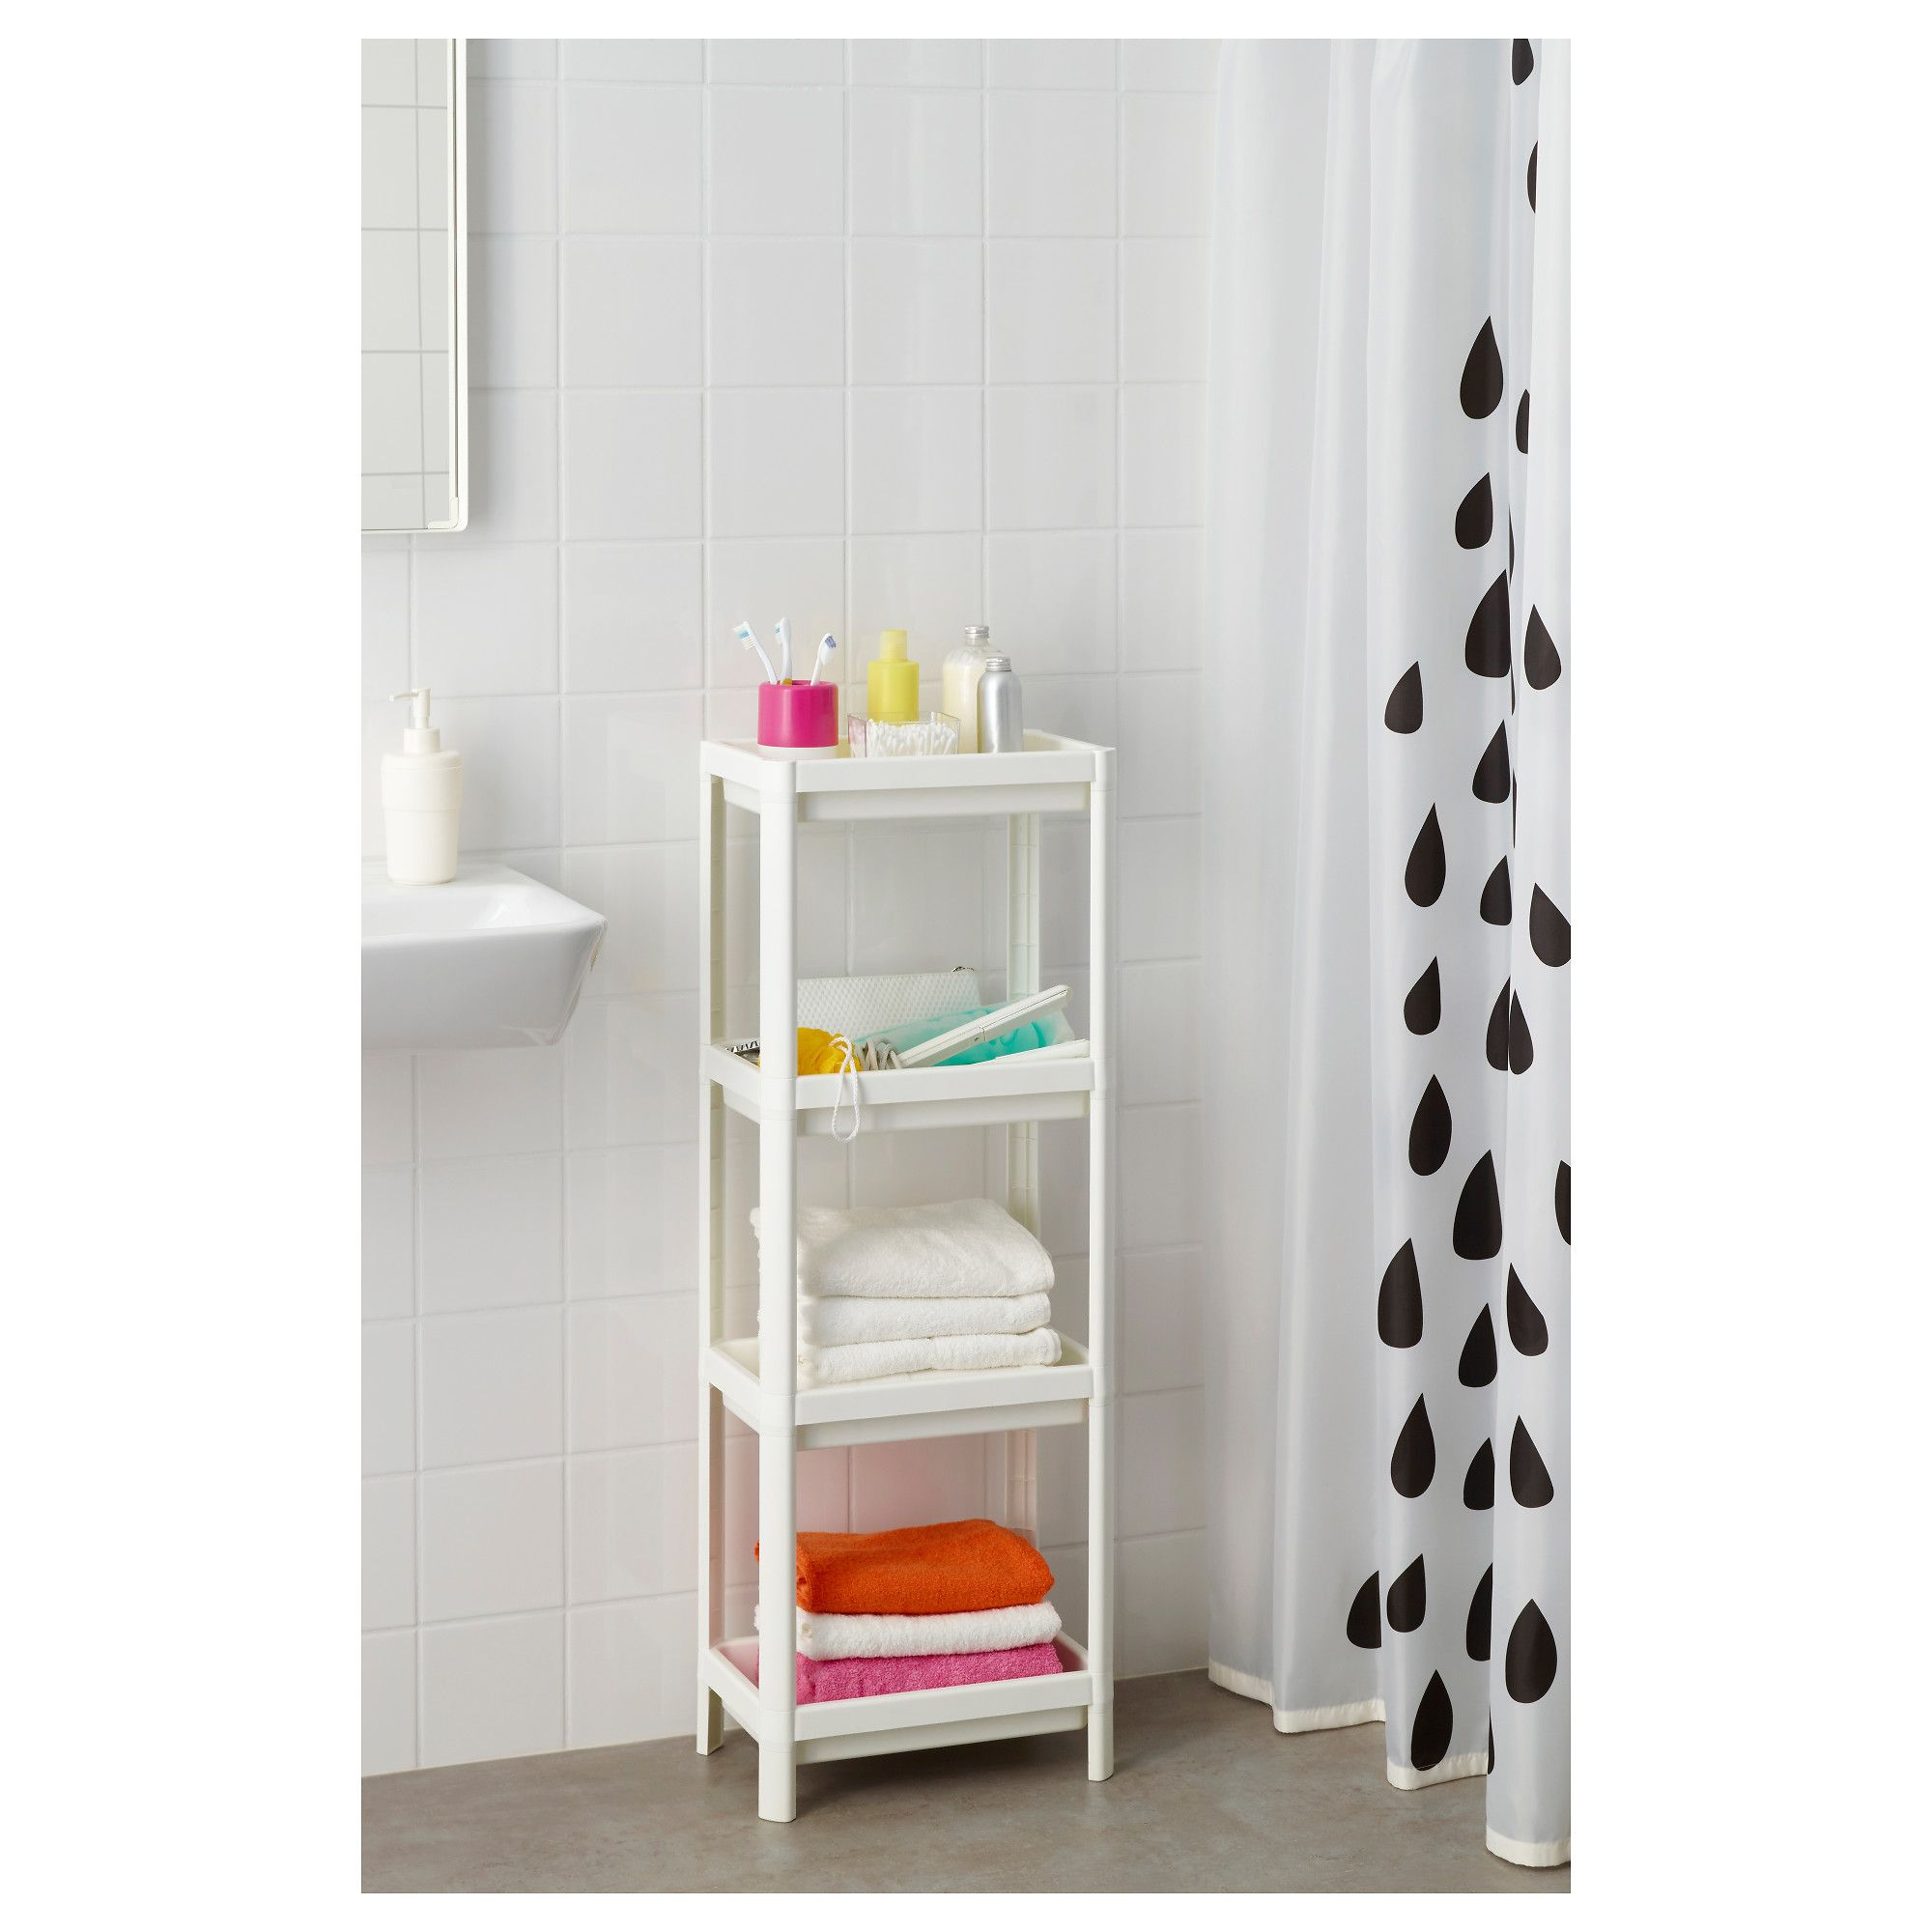 Vesken White Shelf Unit 36x23x100 Cm Ikea Shelf Unit Shelves Ikea Bathroom Shelves